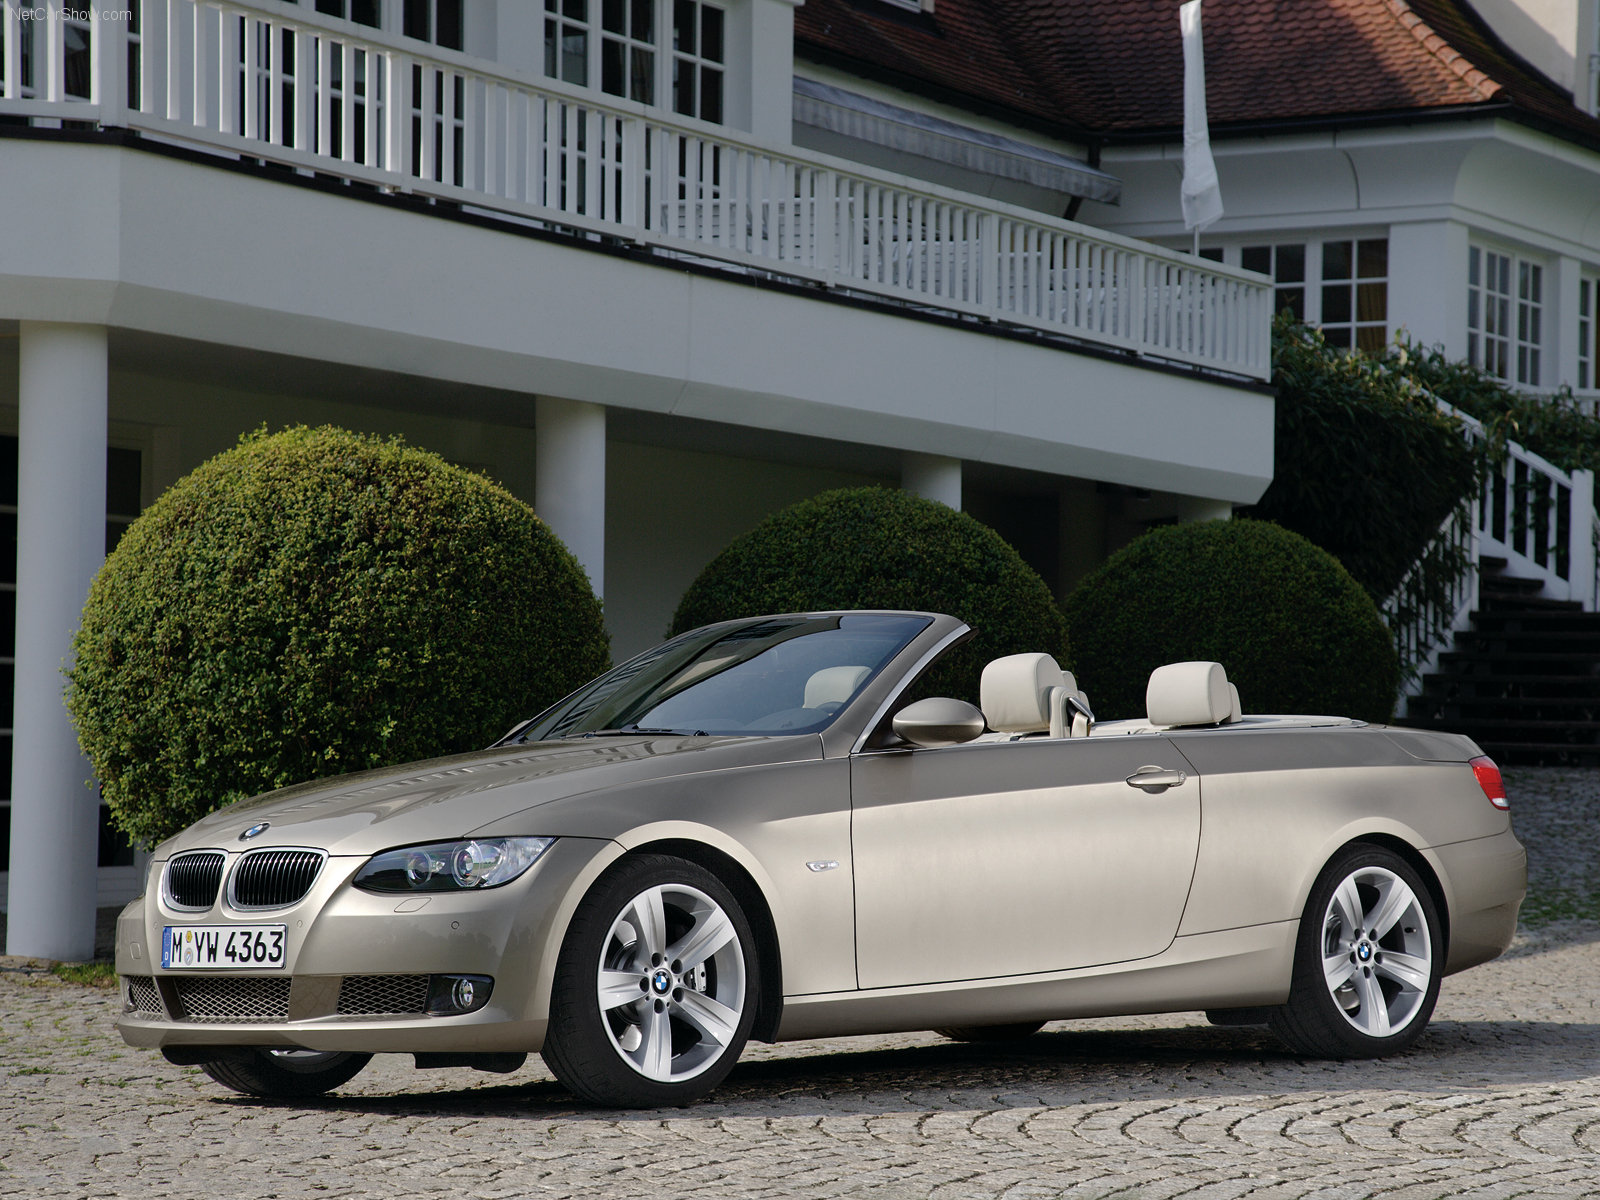 BMW 3-series E93 Convertible photo 39465